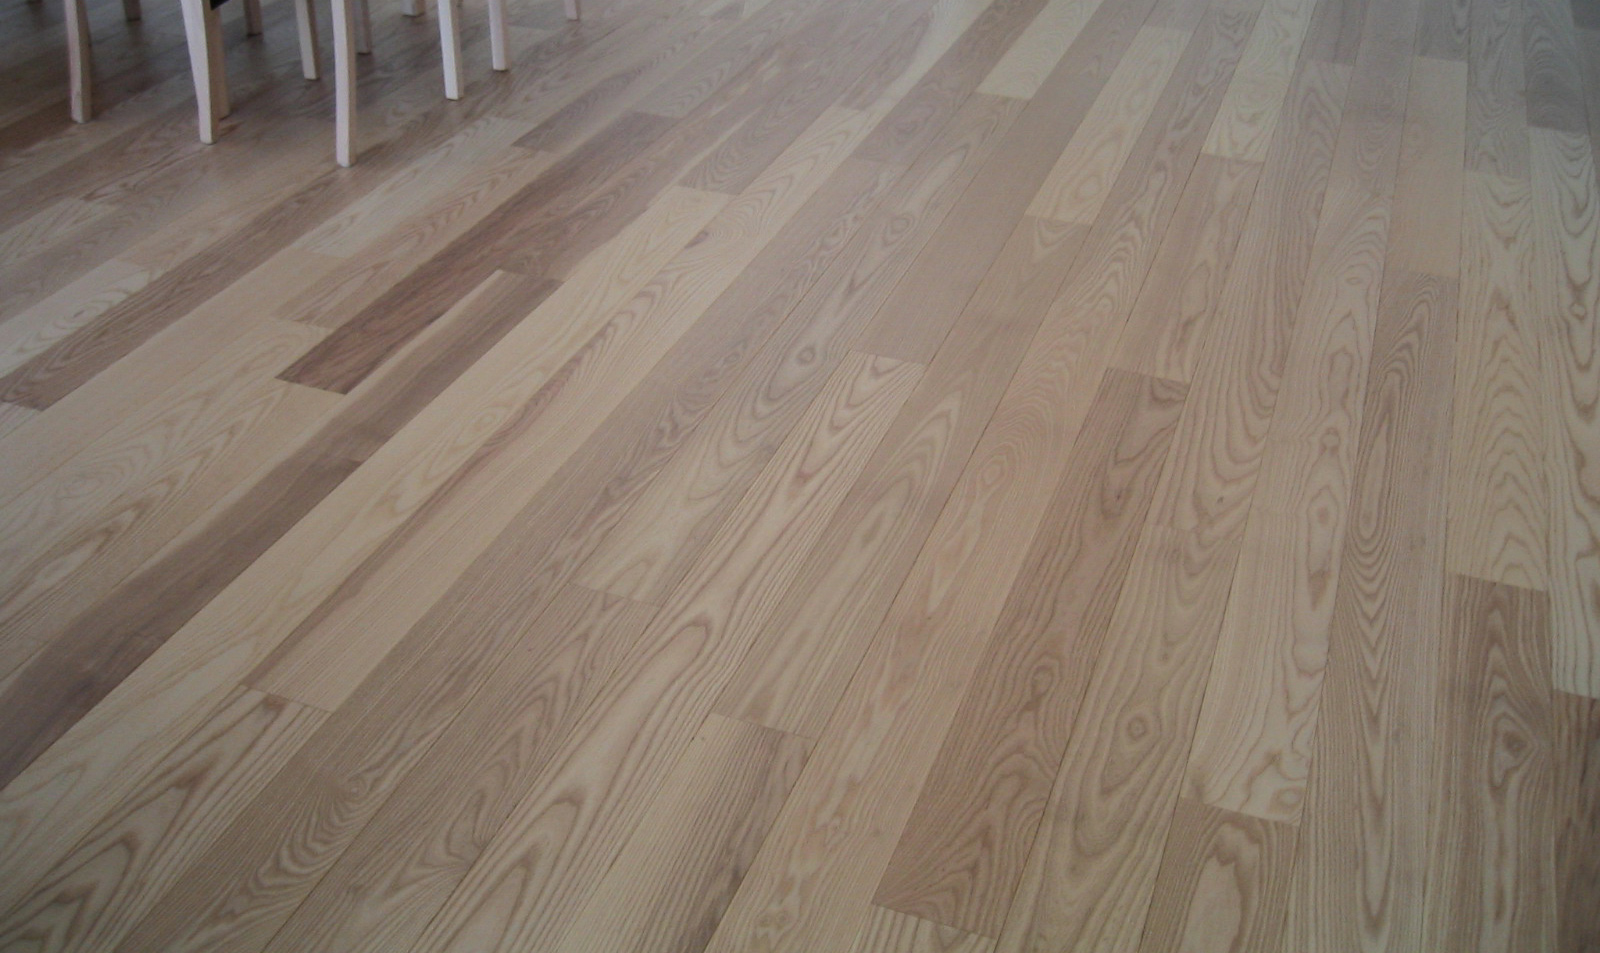 Ash flooring floors doors interior design for Real wood flooring